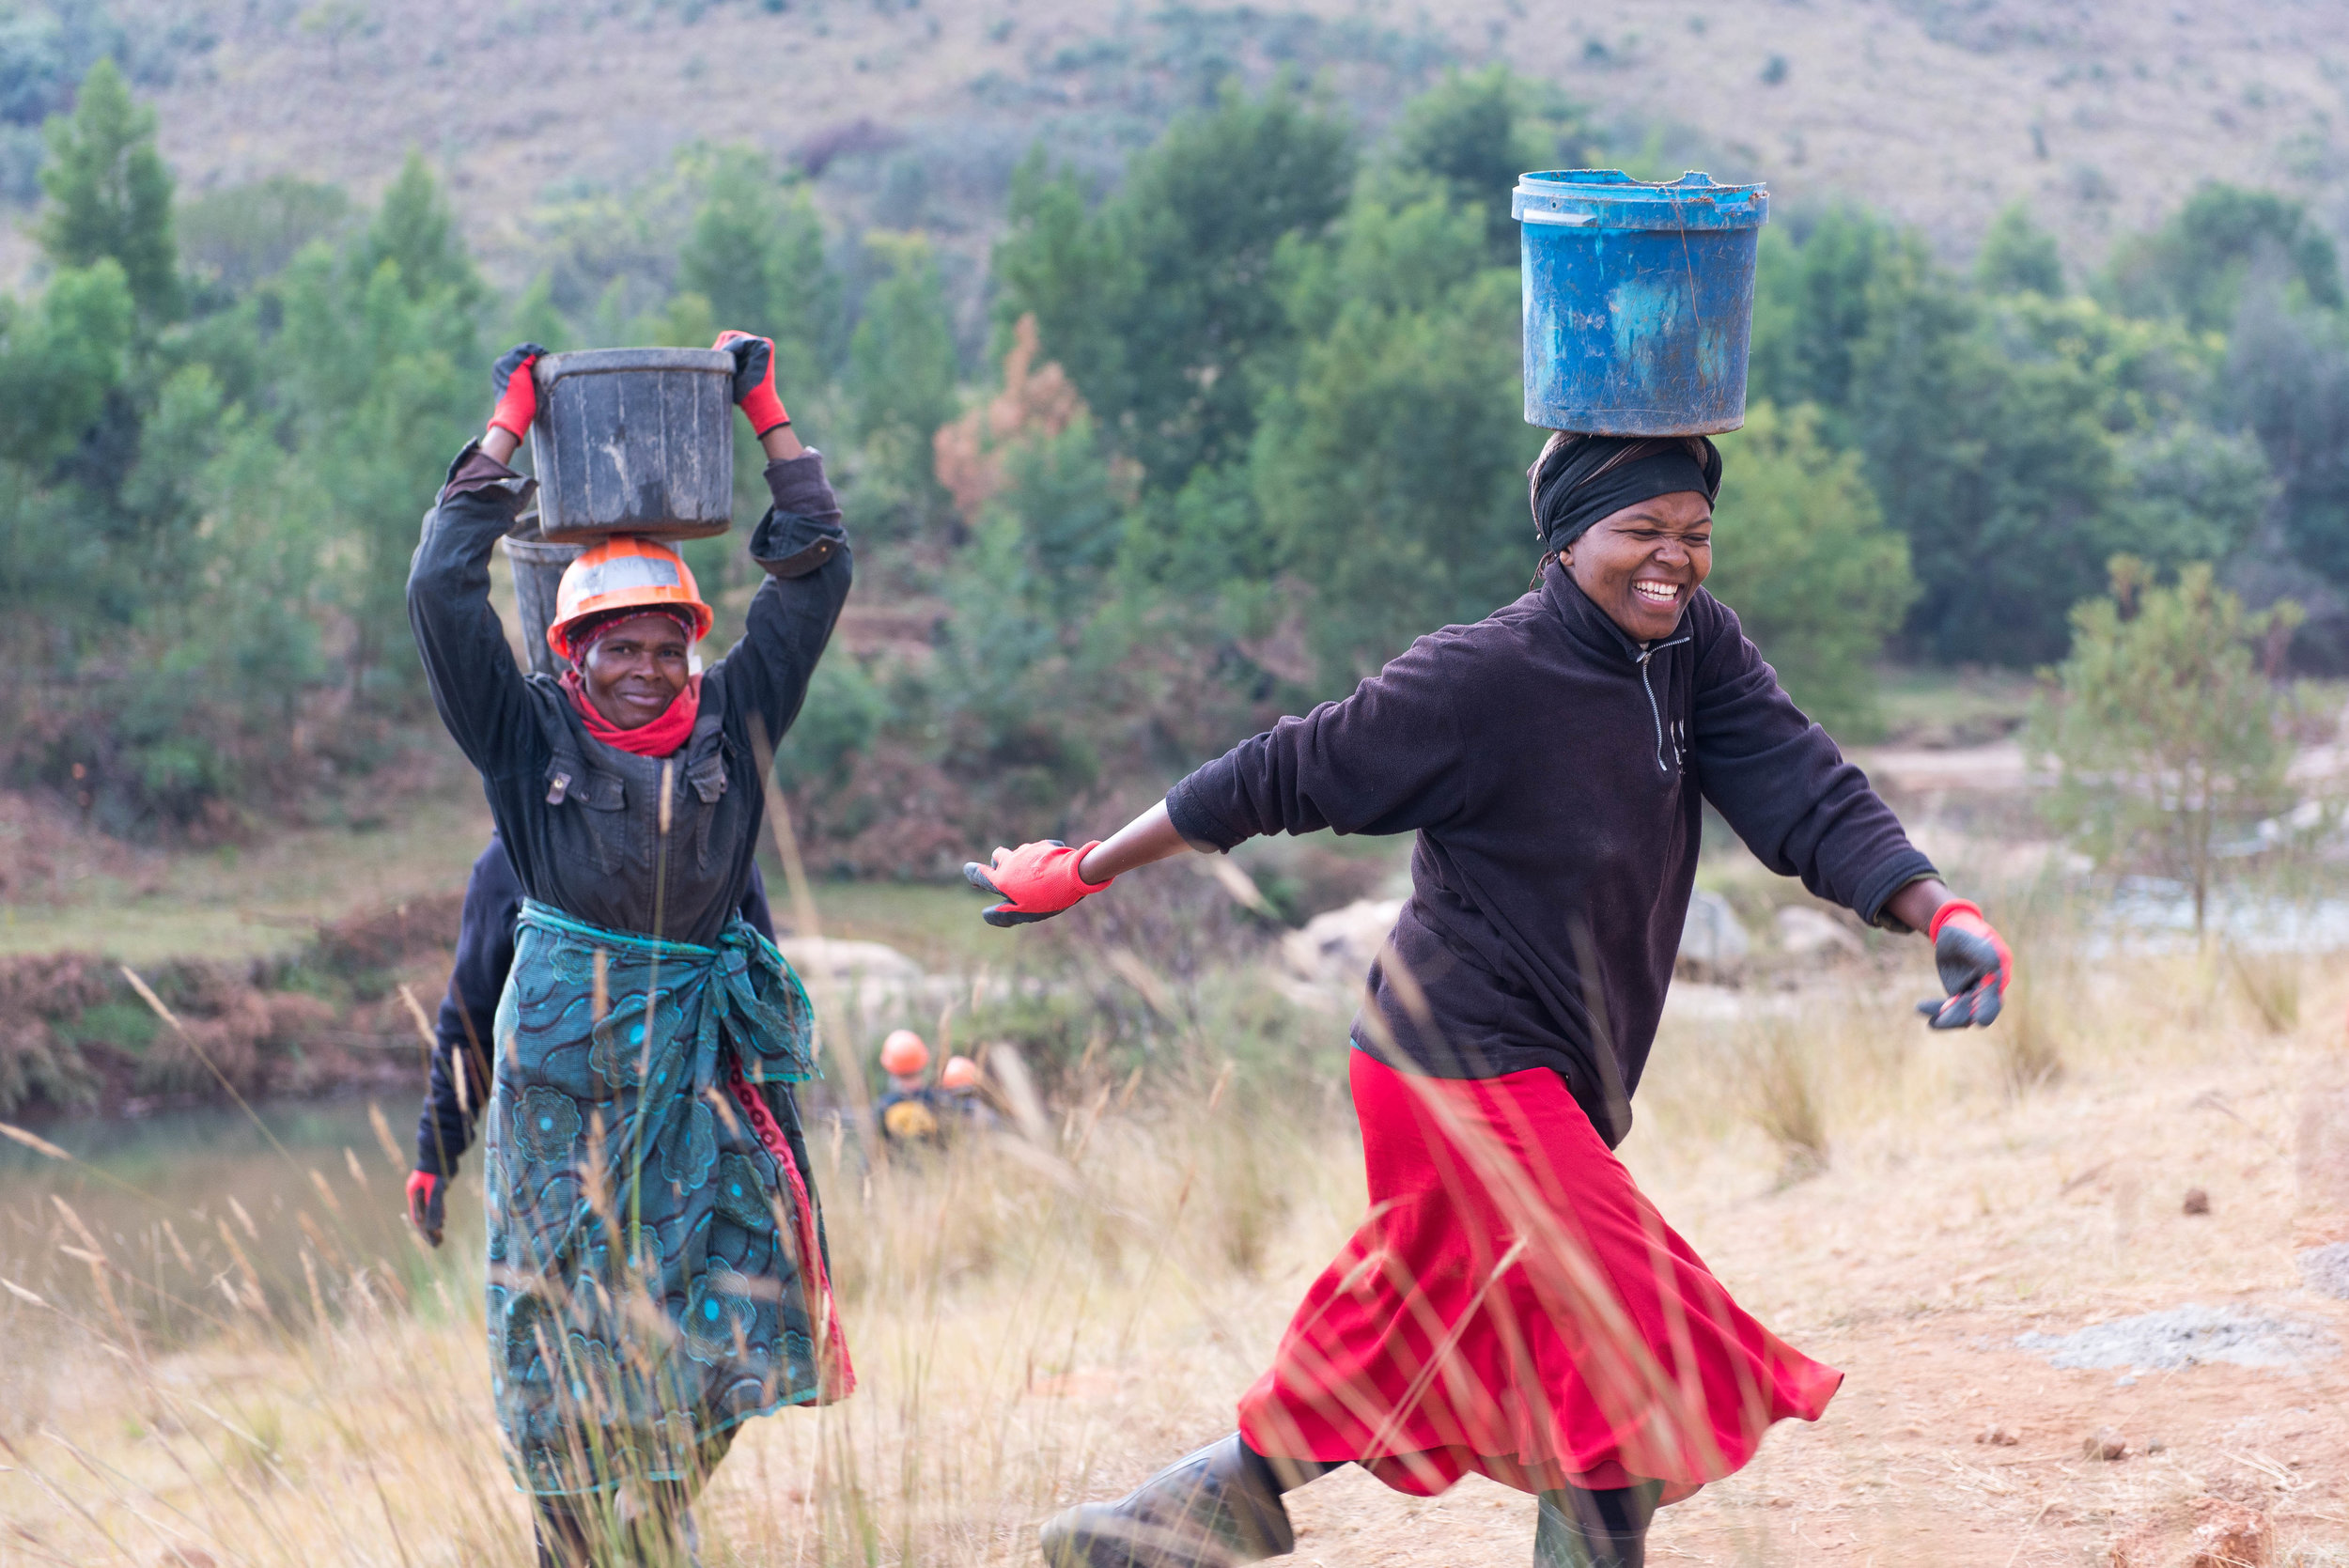 Carrying sand and water was a daily task on the bridge site. Edlangeni, Swaziland